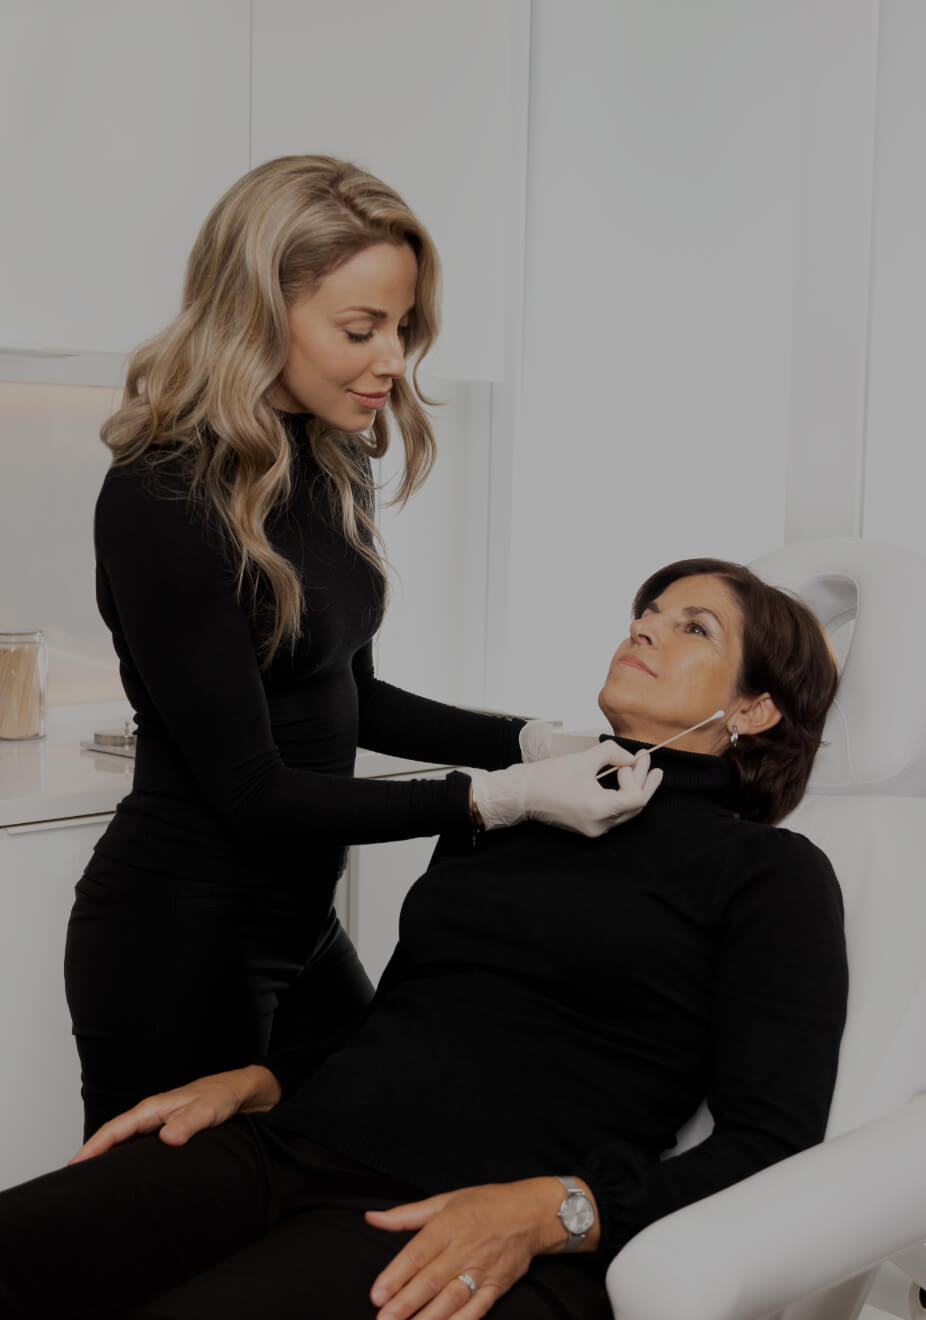 Nurse injector Anabel St-Onge preparing a dermal filler syringe in front of a female patient before her treatment